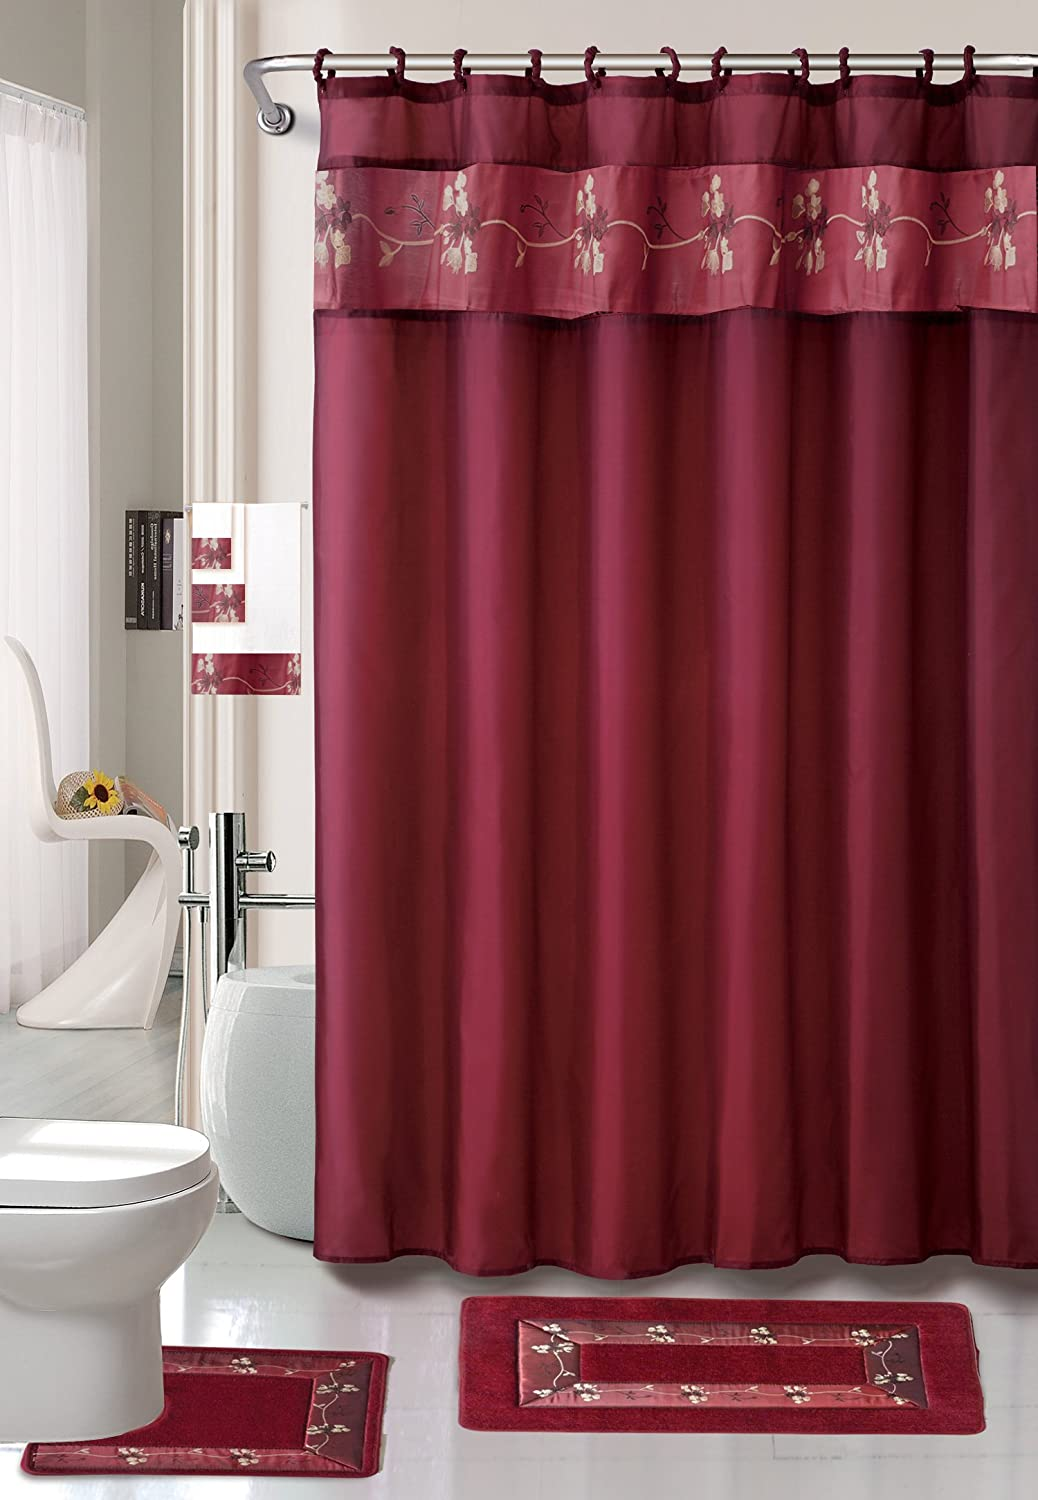 Amazon Burgundy Flower 18 Piece Bathroom Set 2 Rugs Mats 1 Fabric Shower Curtain 12 Covered Rings 3 Pc Decorative Towel Home Kitchen